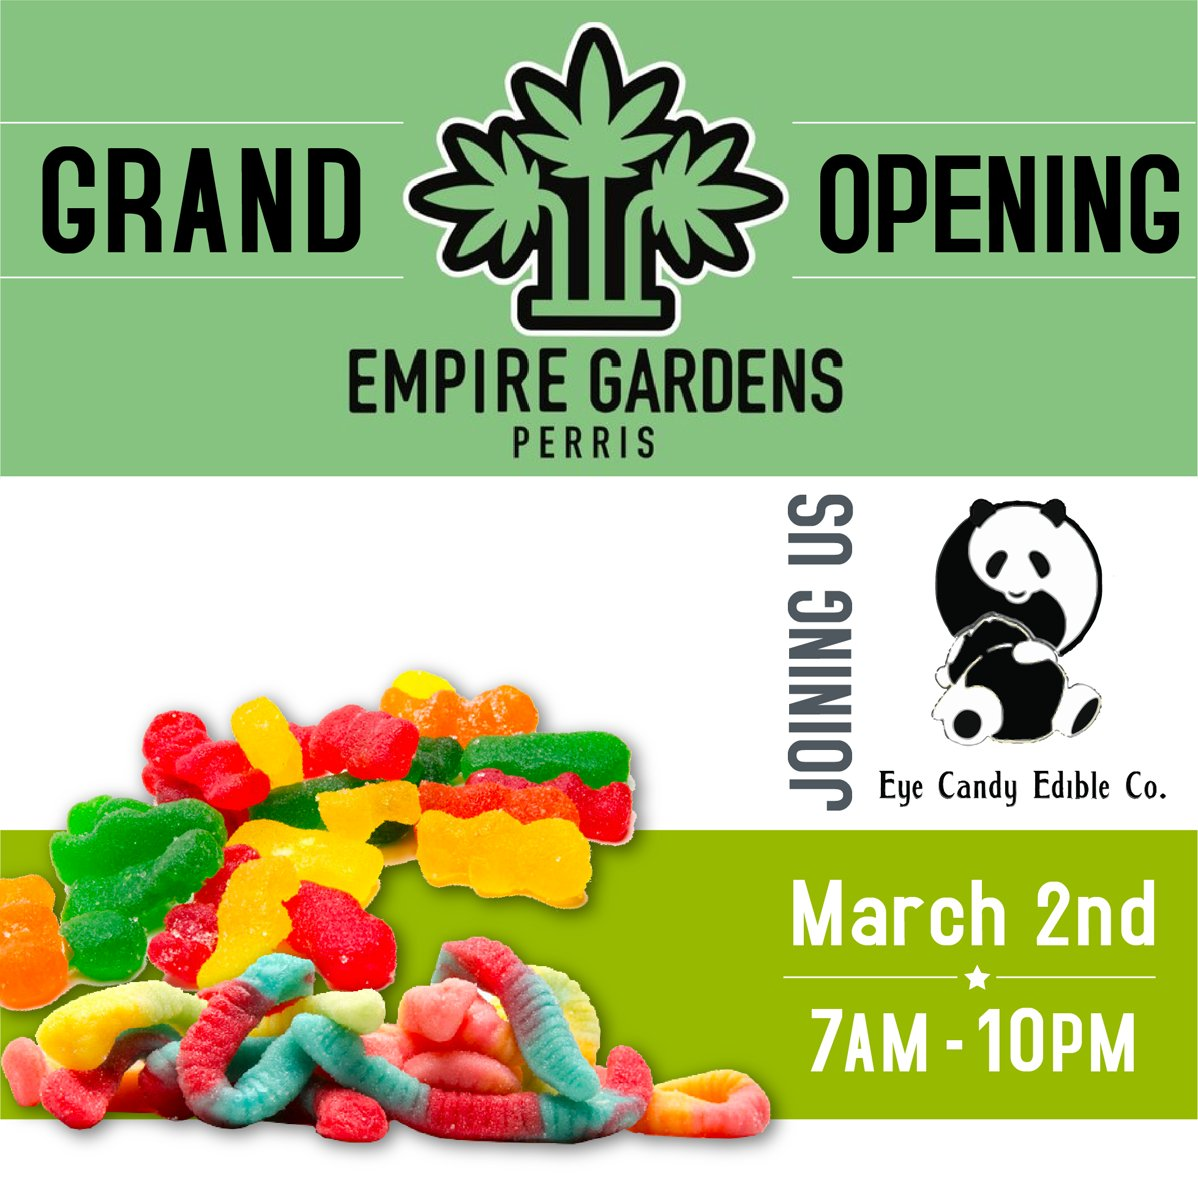 And for those of you that have a sweet tooth... in other words EVERYONE! Let's not forget our friends at Eye Candy Edibles that will be joining us tomorrow too!!! #eyecandyedibles #kushcandy #eyecandyedibleco #realempiregardens #empiregardens #grandopening #freebies #freestuff https://t.co/t1ku3tgrsJ